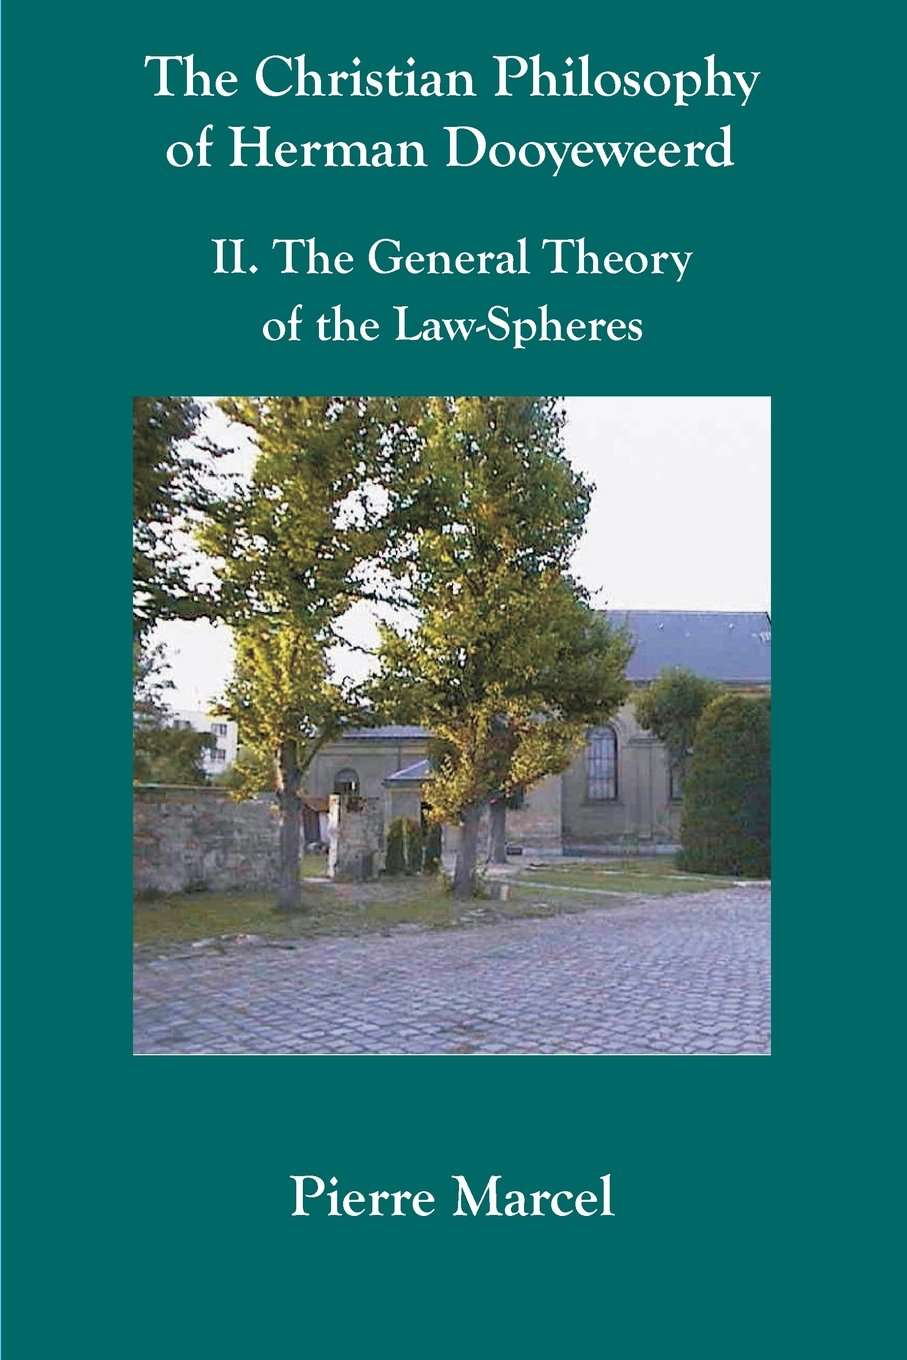 The Christian Philosophy of Herman Dooyeweerd: II. the General Theory of the Law-Spheres PDF